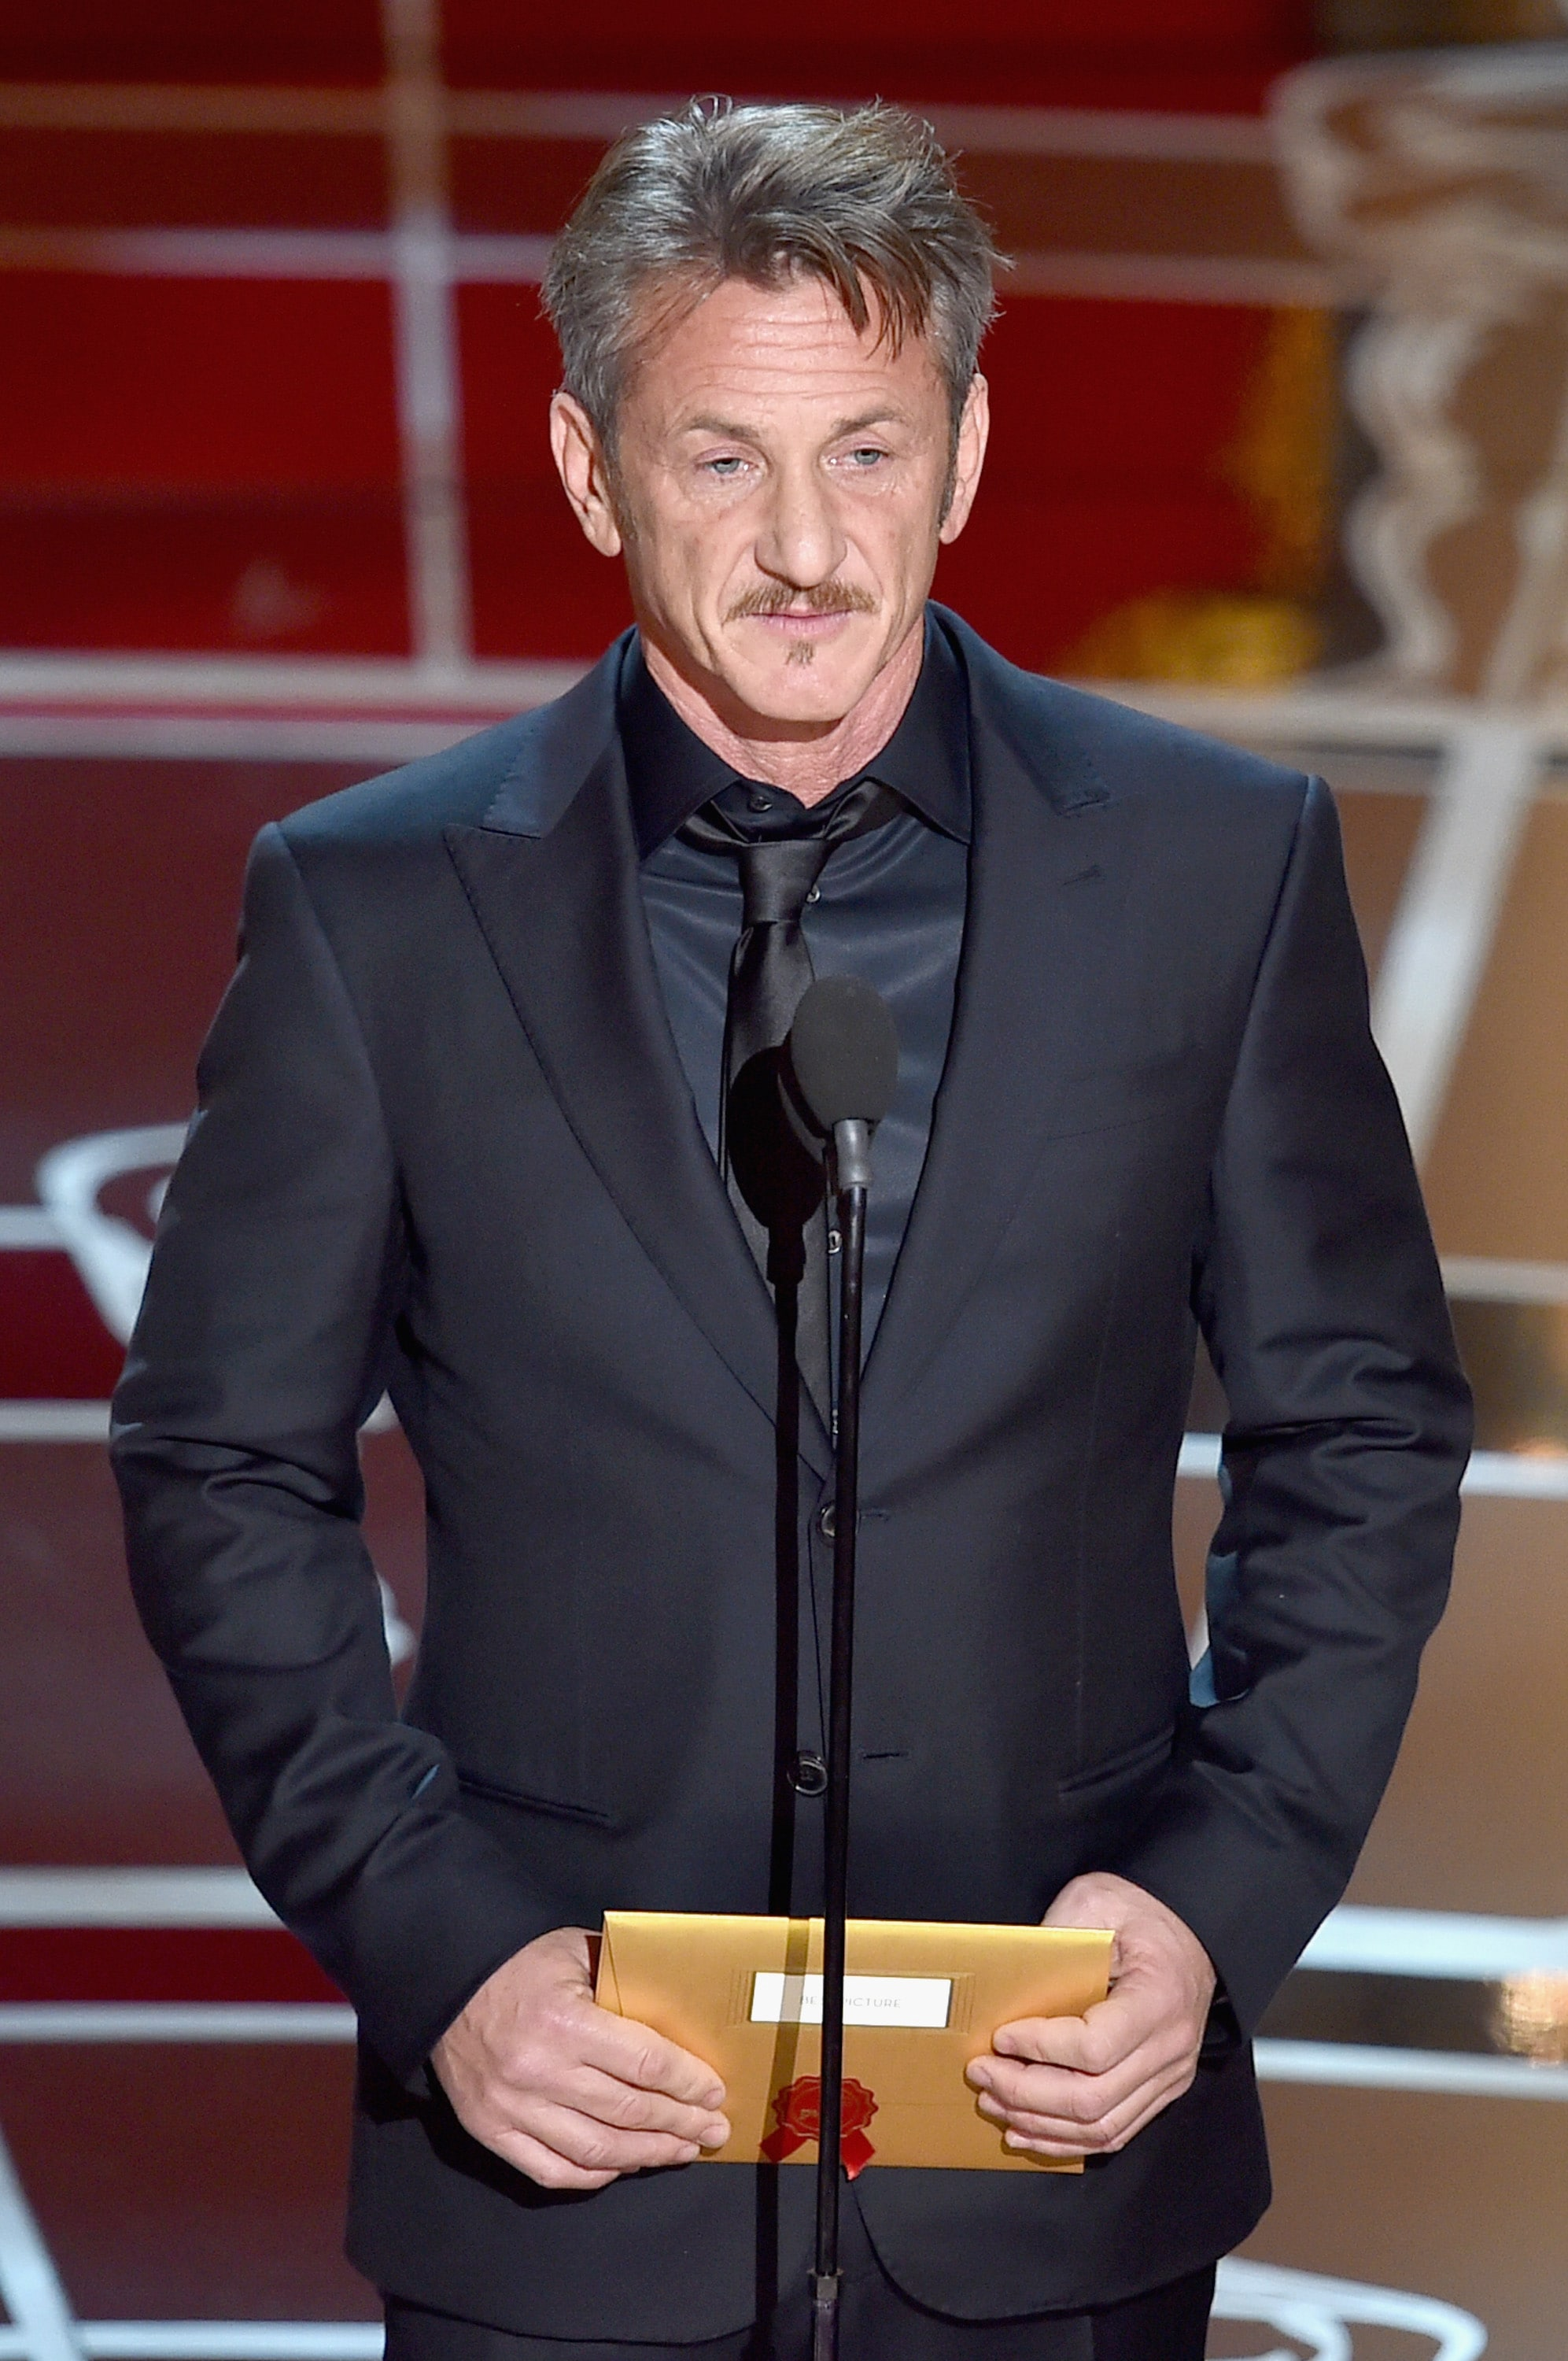 HOLLYWOOD, CA - FEBRUARY 22: Actor Sean Penn speaks onstage during the 87th Annual Academy Awards at Dolby Theatre on February 22, 2015 in Hollywood, California. (Photo by Kevin Winter/Getty Images)